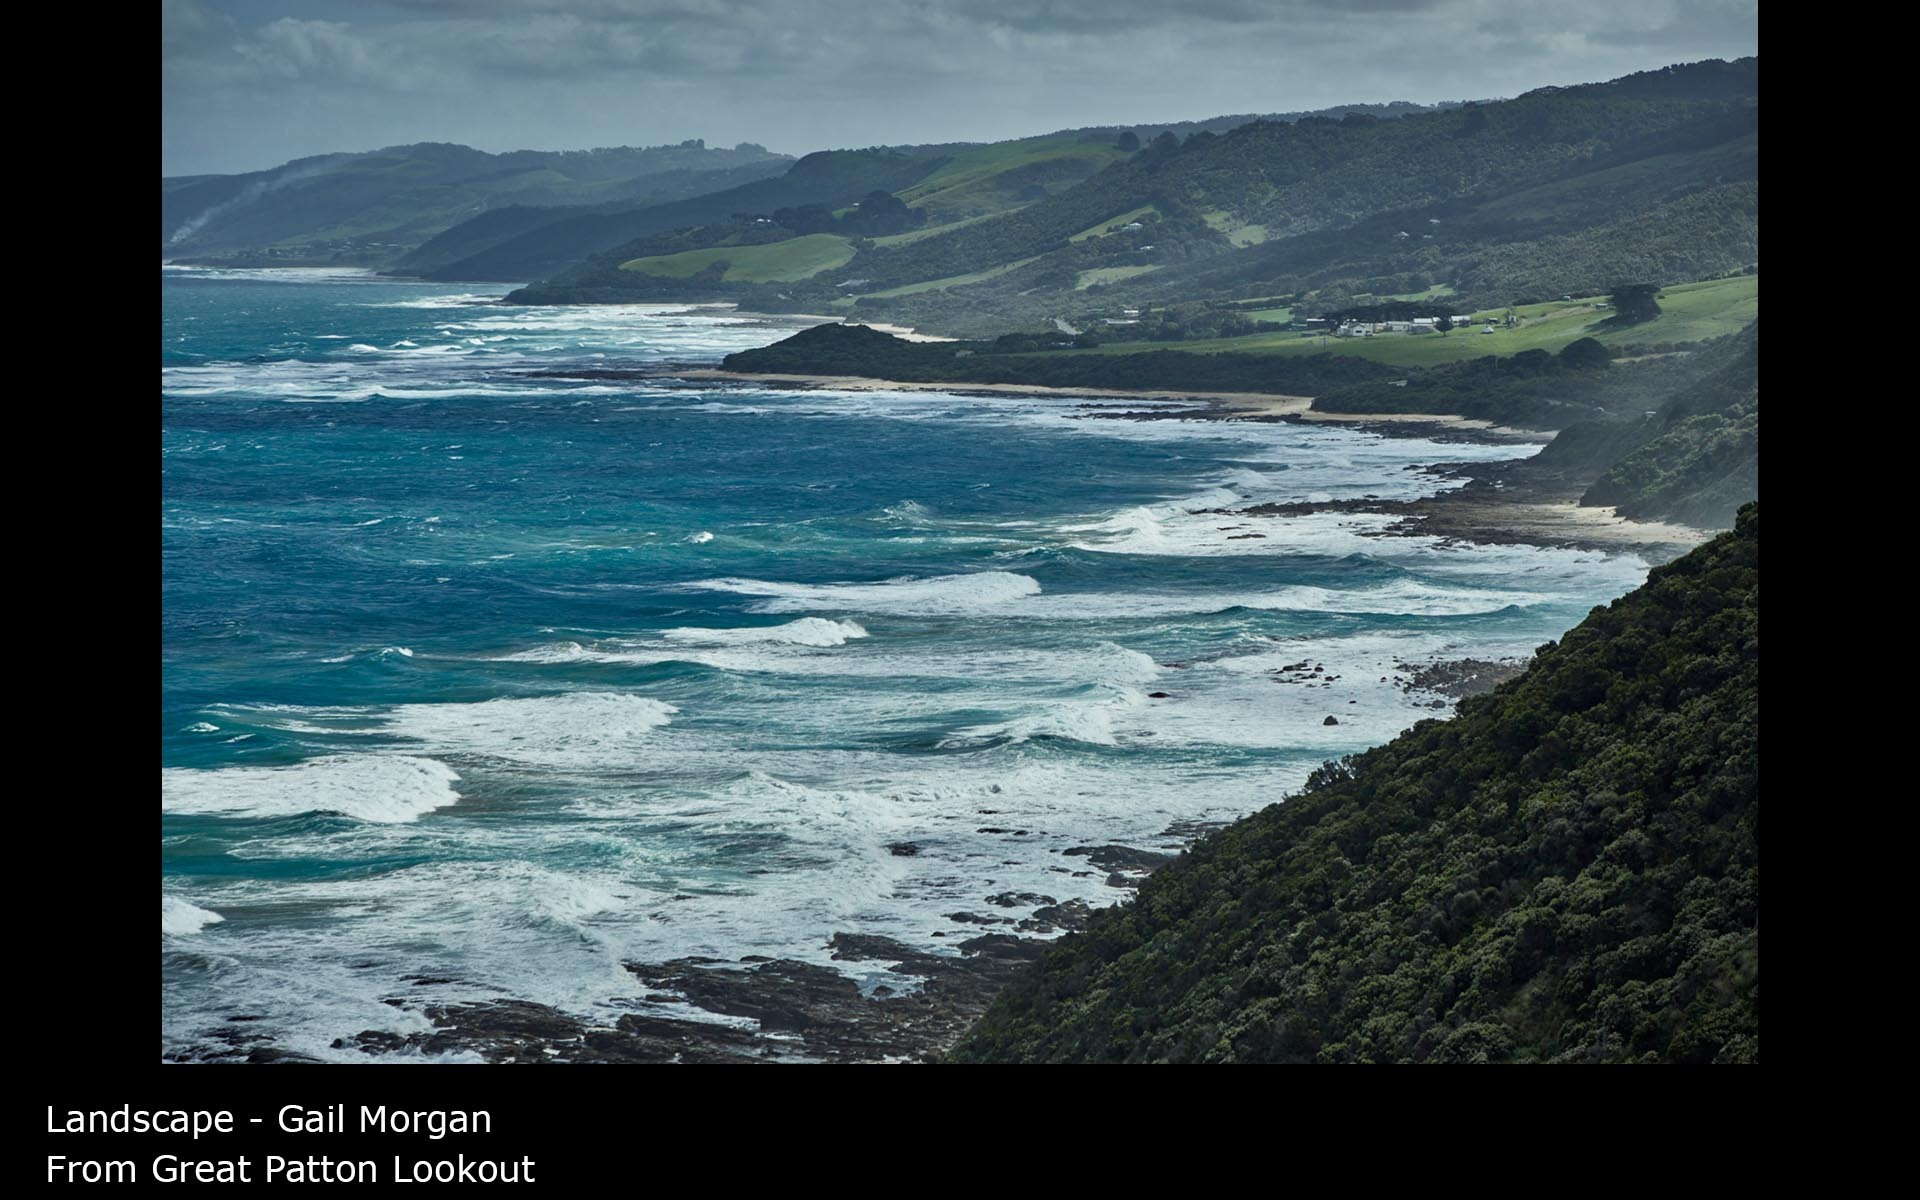 From Great Patton Lookout - Gail Morgan